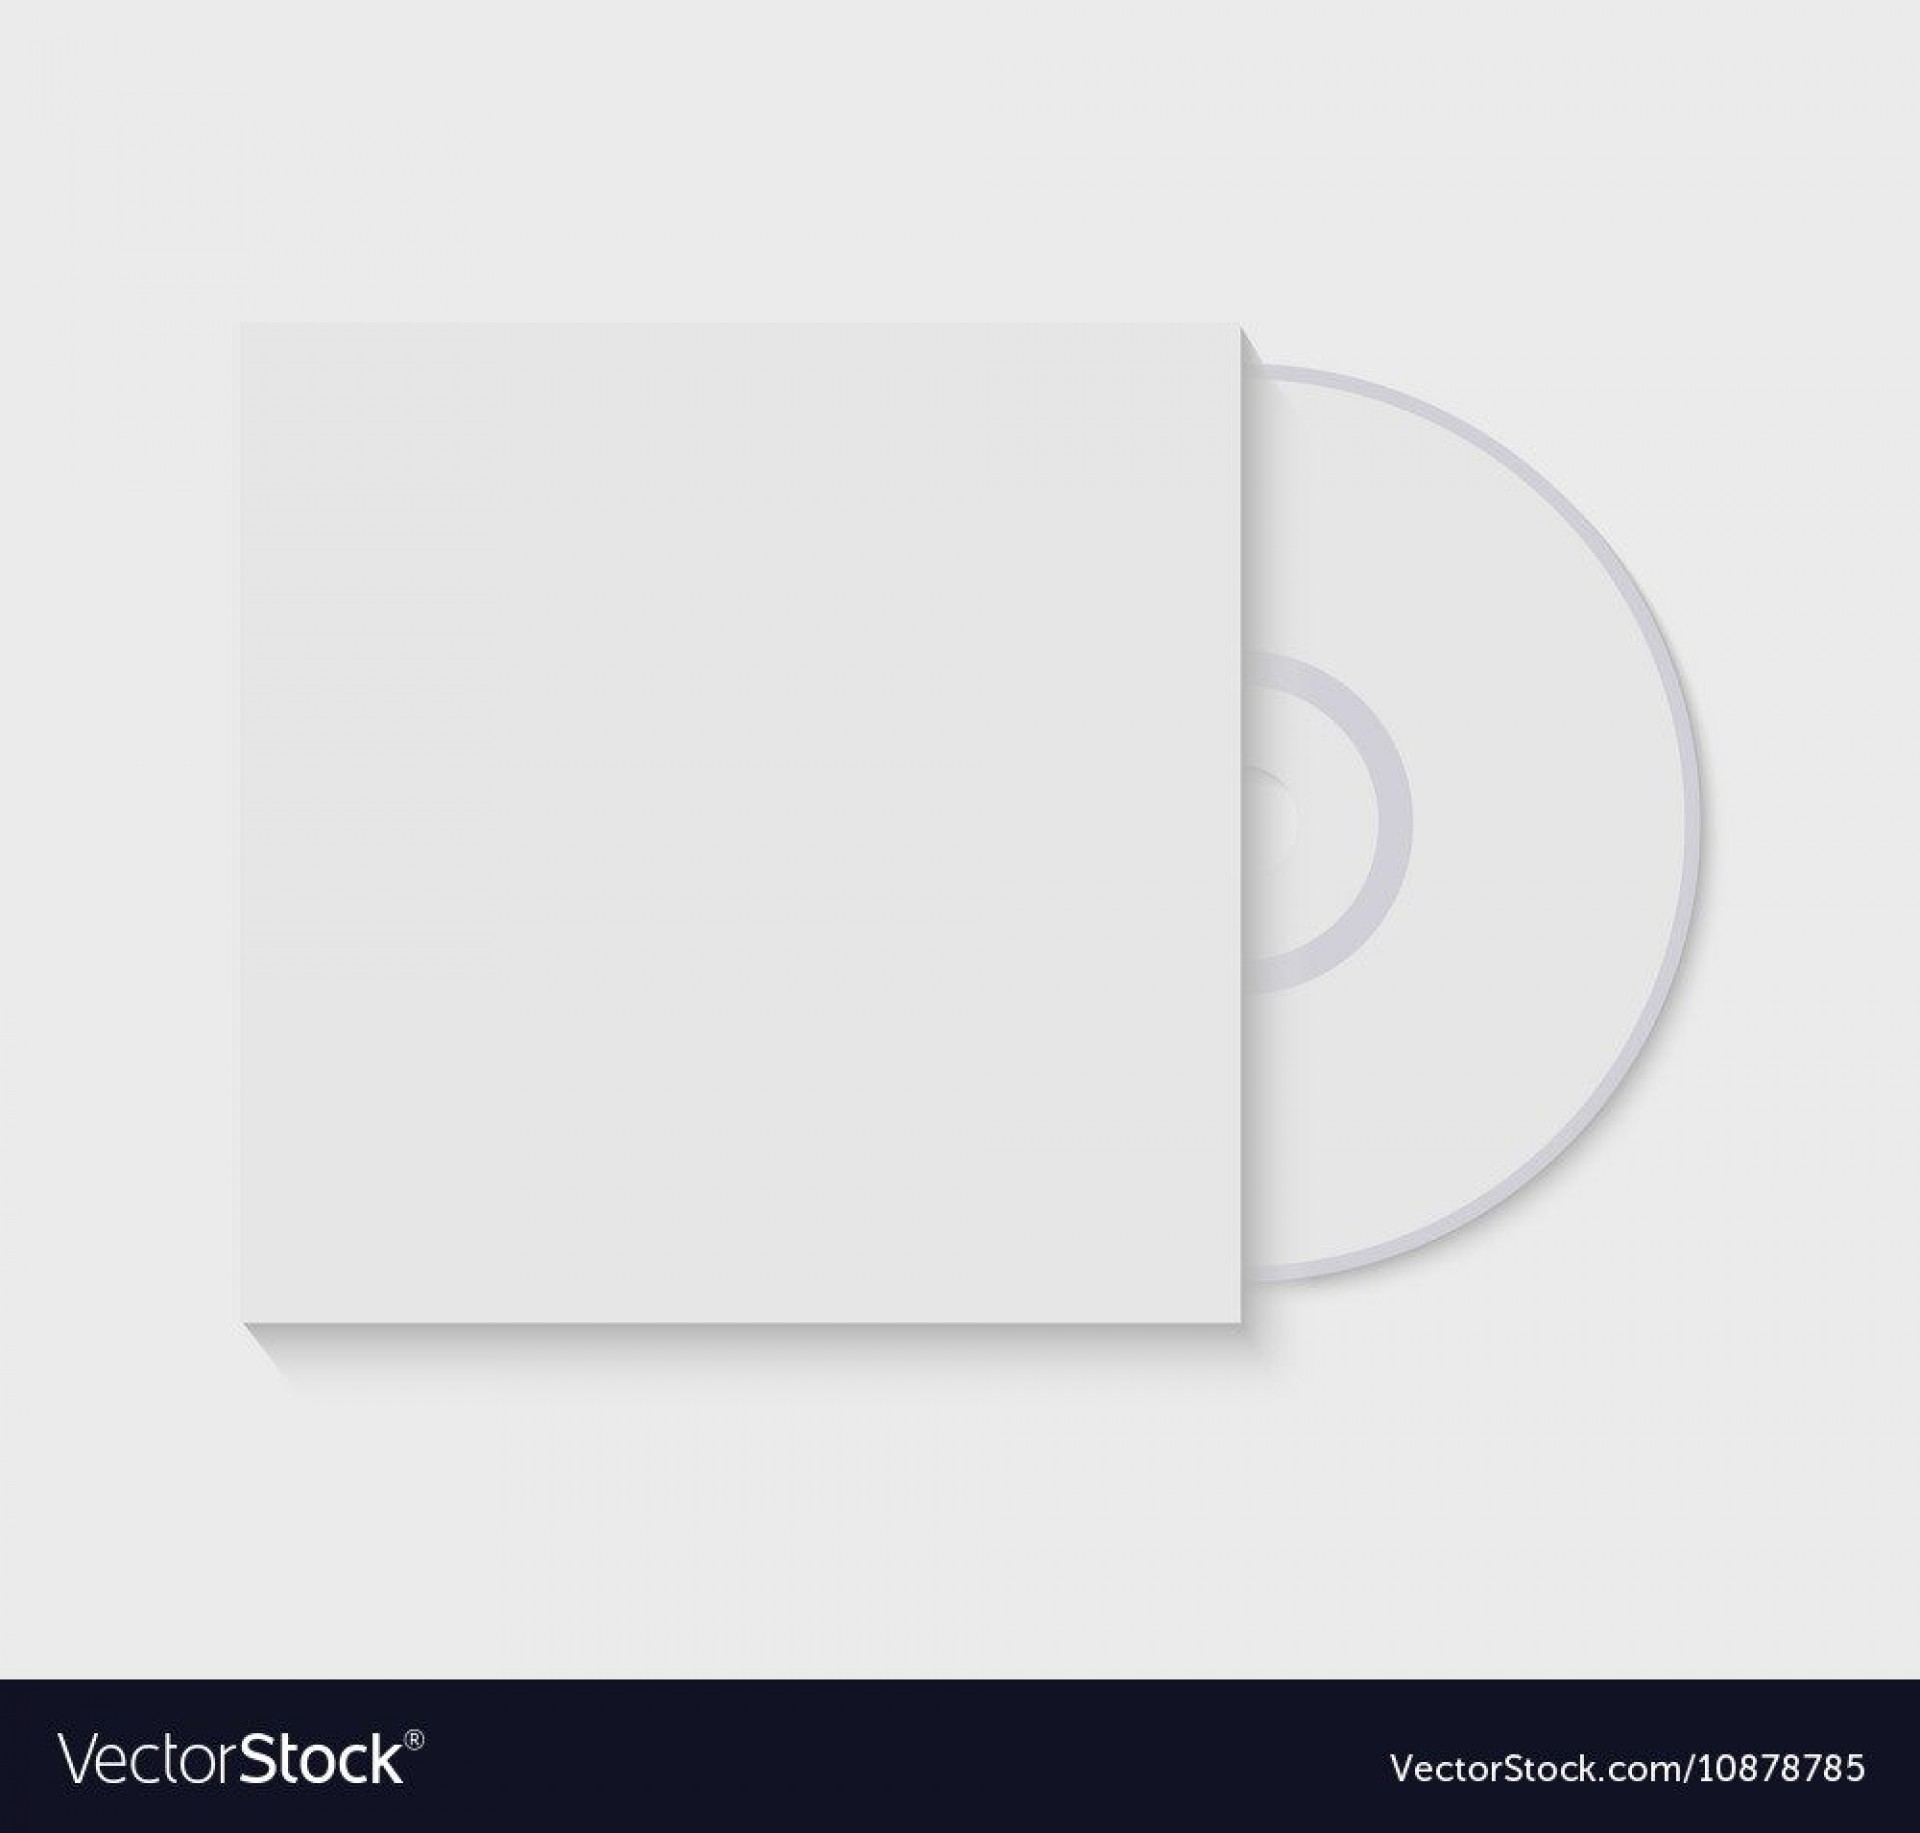 009 Outstanding Cd Case Insert Template High Def  Jewel Word 2016 Photoshop1920